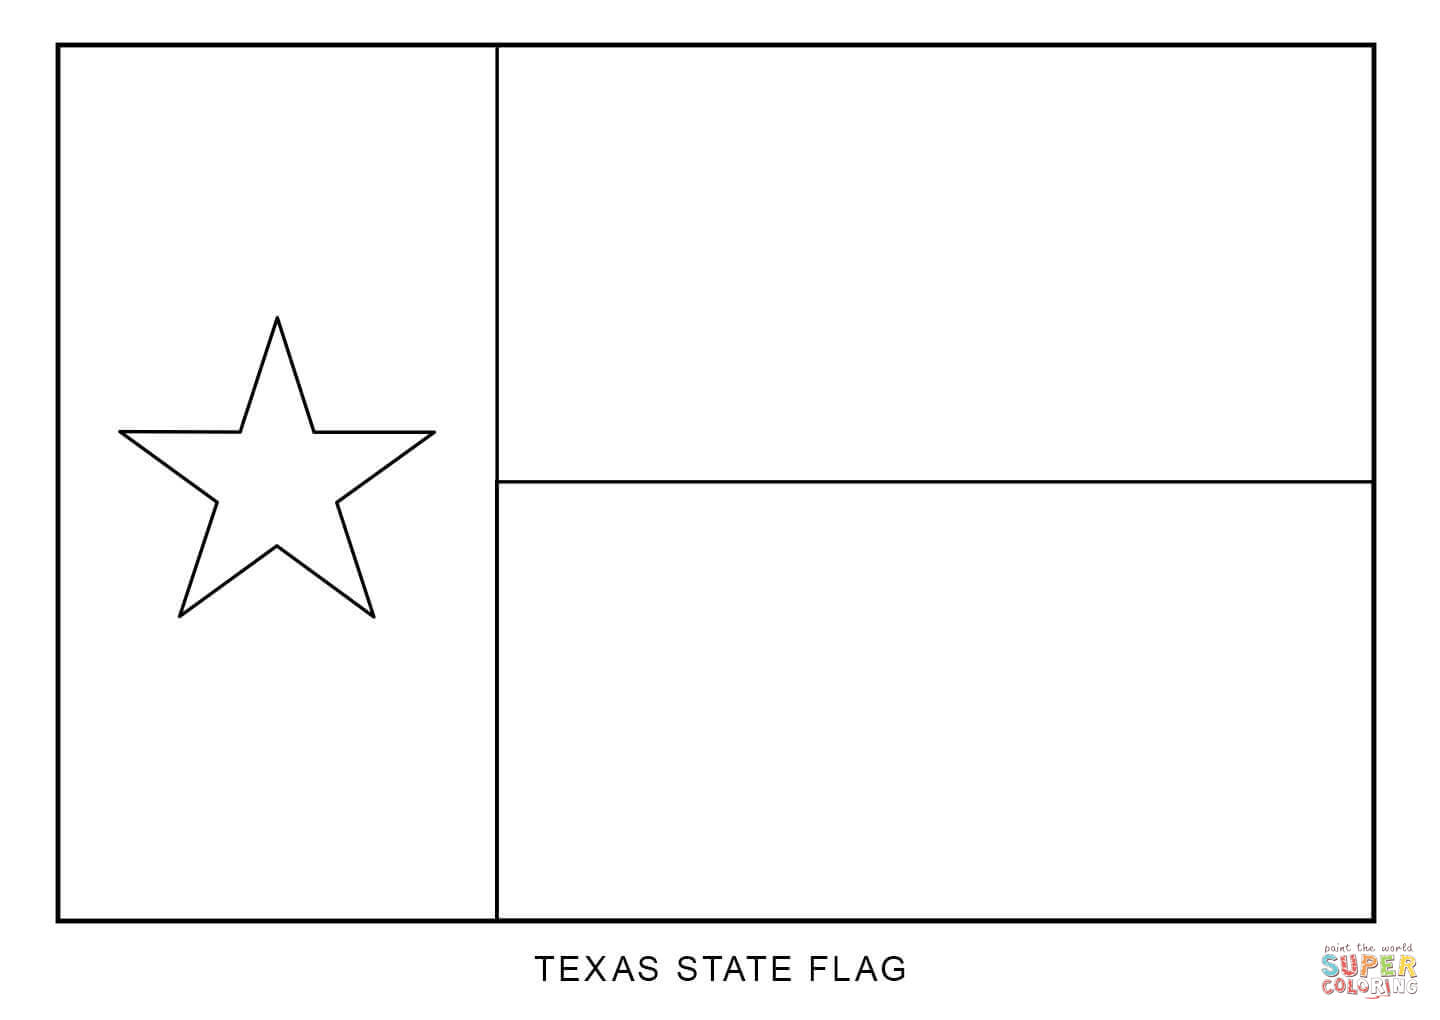 picture of texas flag to color texas flag coloring page coloring home texas picture to color of flag